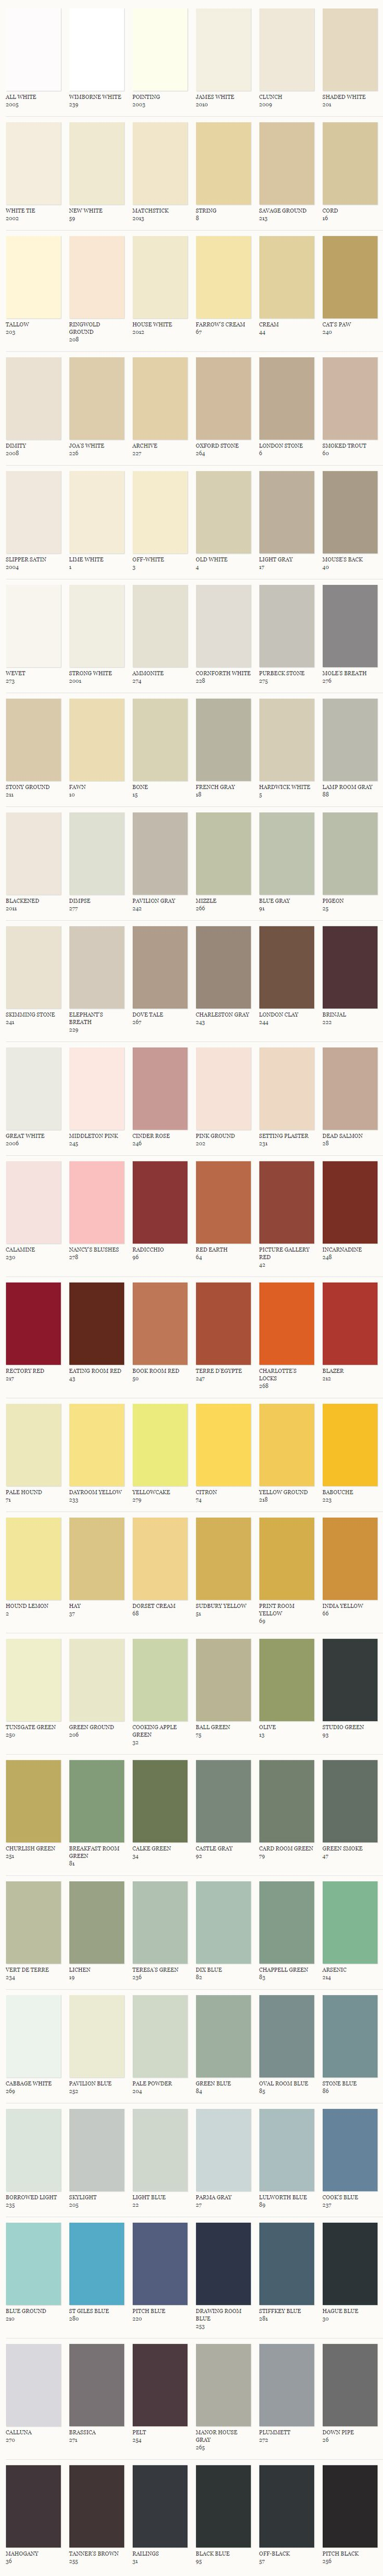 carta de colores de farrow and ball